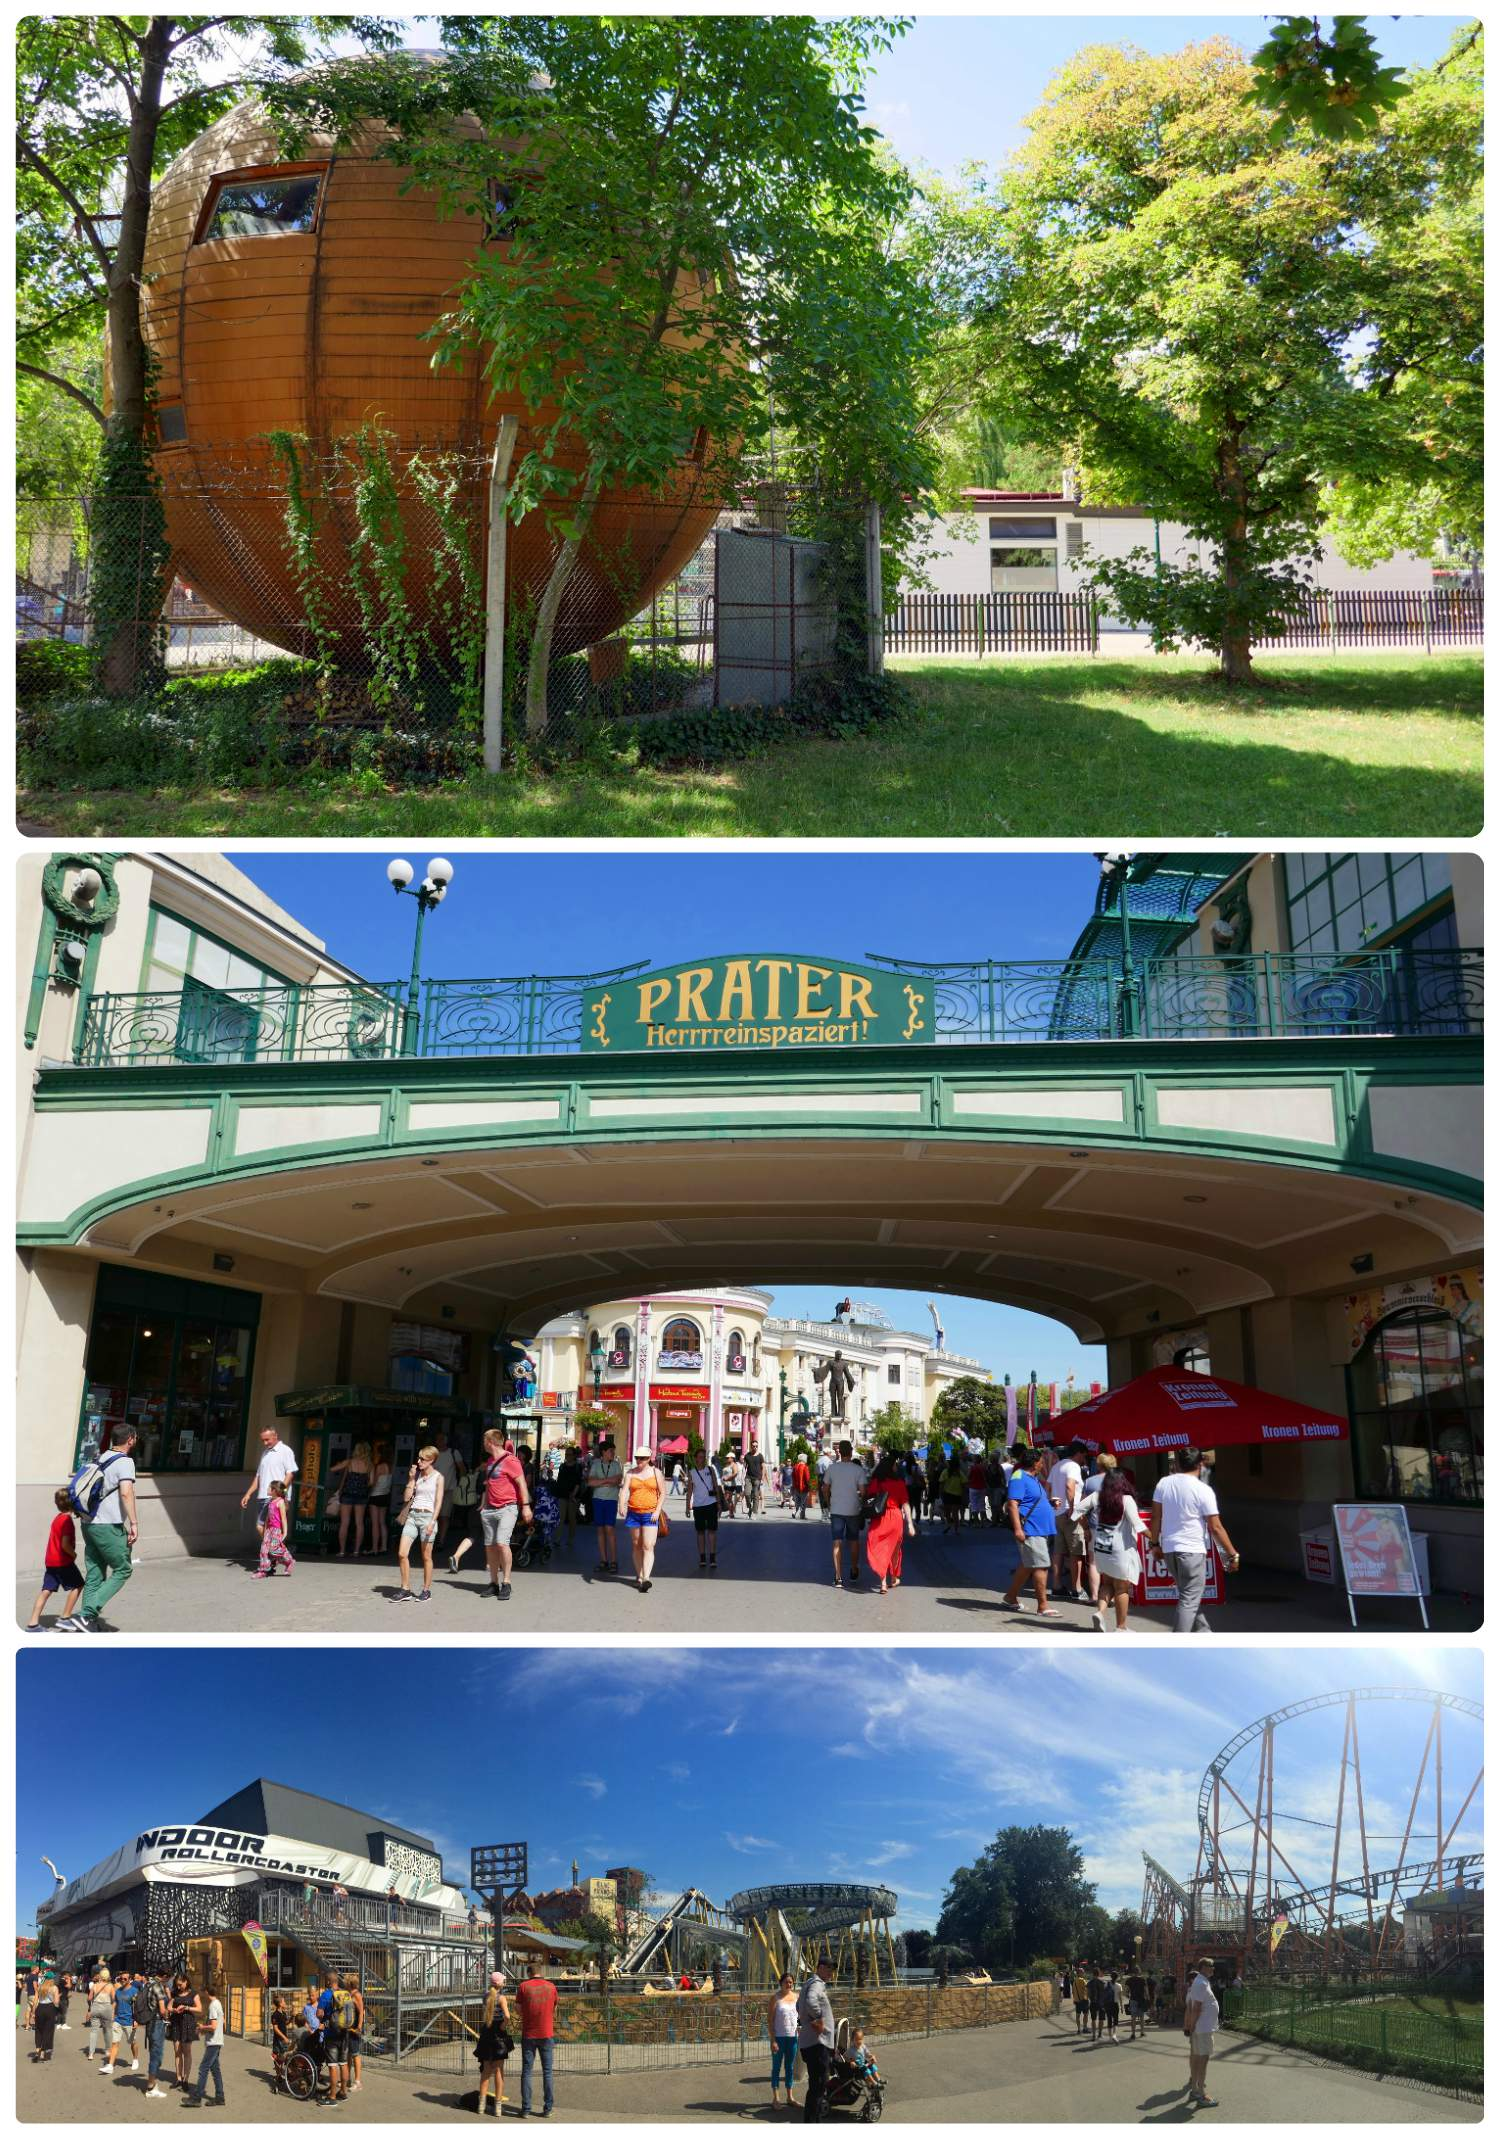 When visiting don't miss the Republic of Kugelmugel. Located next to the amusement park, it may not draw much attention from its appearance, however the story is quite interesting.